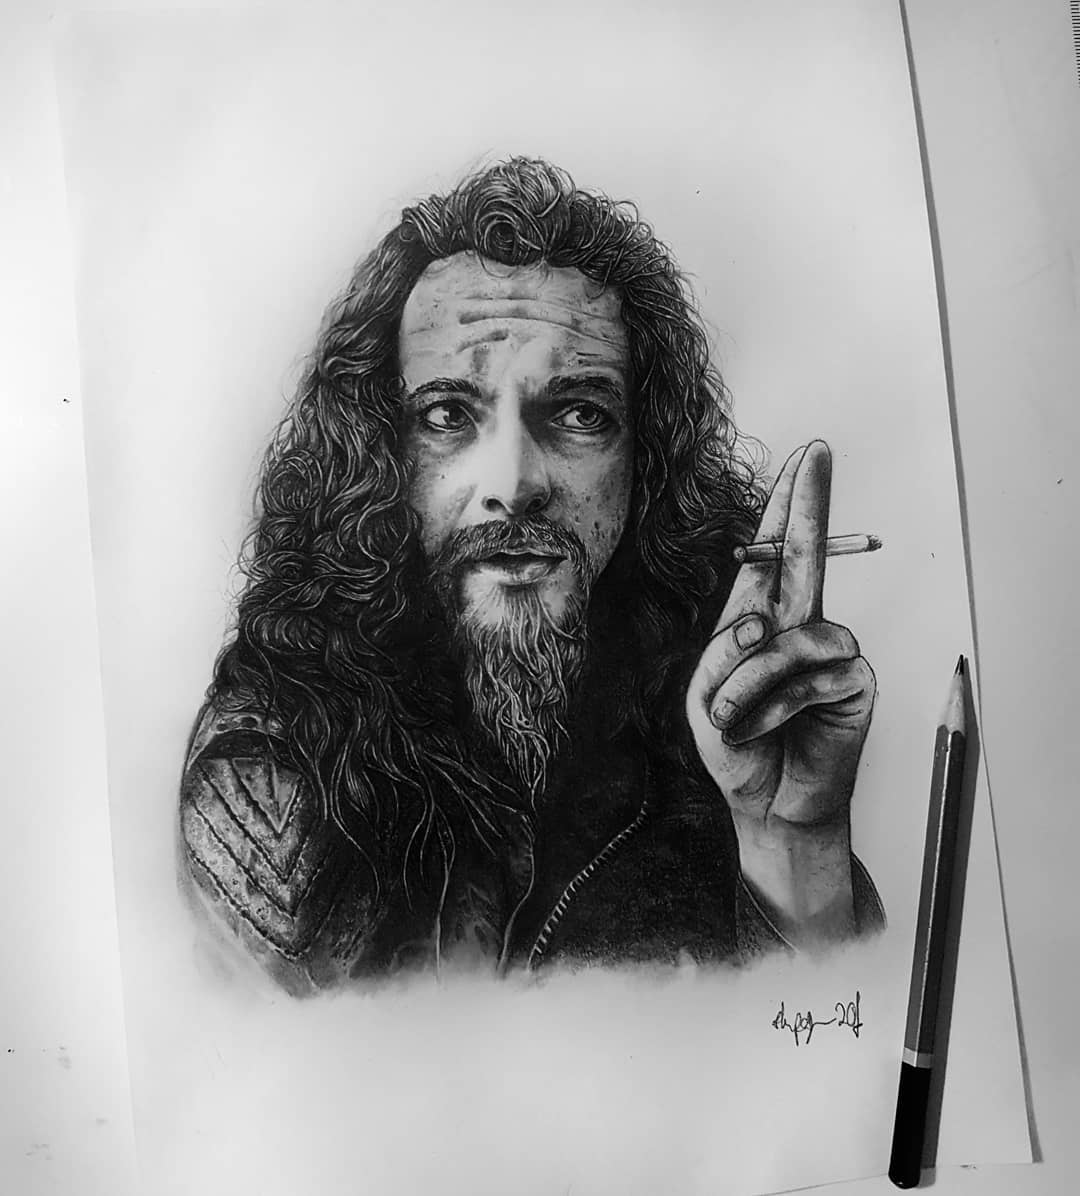 A little side project of mine... taking myself out of my comfort zone and trying something different, I&039;m practising black and grey portraits in pencil (not black ink whaaaat! ) of the artists I love. This is Ian Anderson from @jethrotull_ which took quite a time but was very fun to do 🖤 . . . . . . . . occultarcana artesobscurae btattooing flashworkers blackwork blackworkers blxckink darkartists darkart darkarts thedarkestwork onlyblackart onlythedarkest stabmegod blacktattoo metalhead blackmetal occult wiccac witchythings darkartistries edinburgh goth gothic studioxiii @artesobscurae @occultarcana @thedarkestwork @onlythedarkest @black_tattoo_culture @darkartists @wiccac @darkartistries